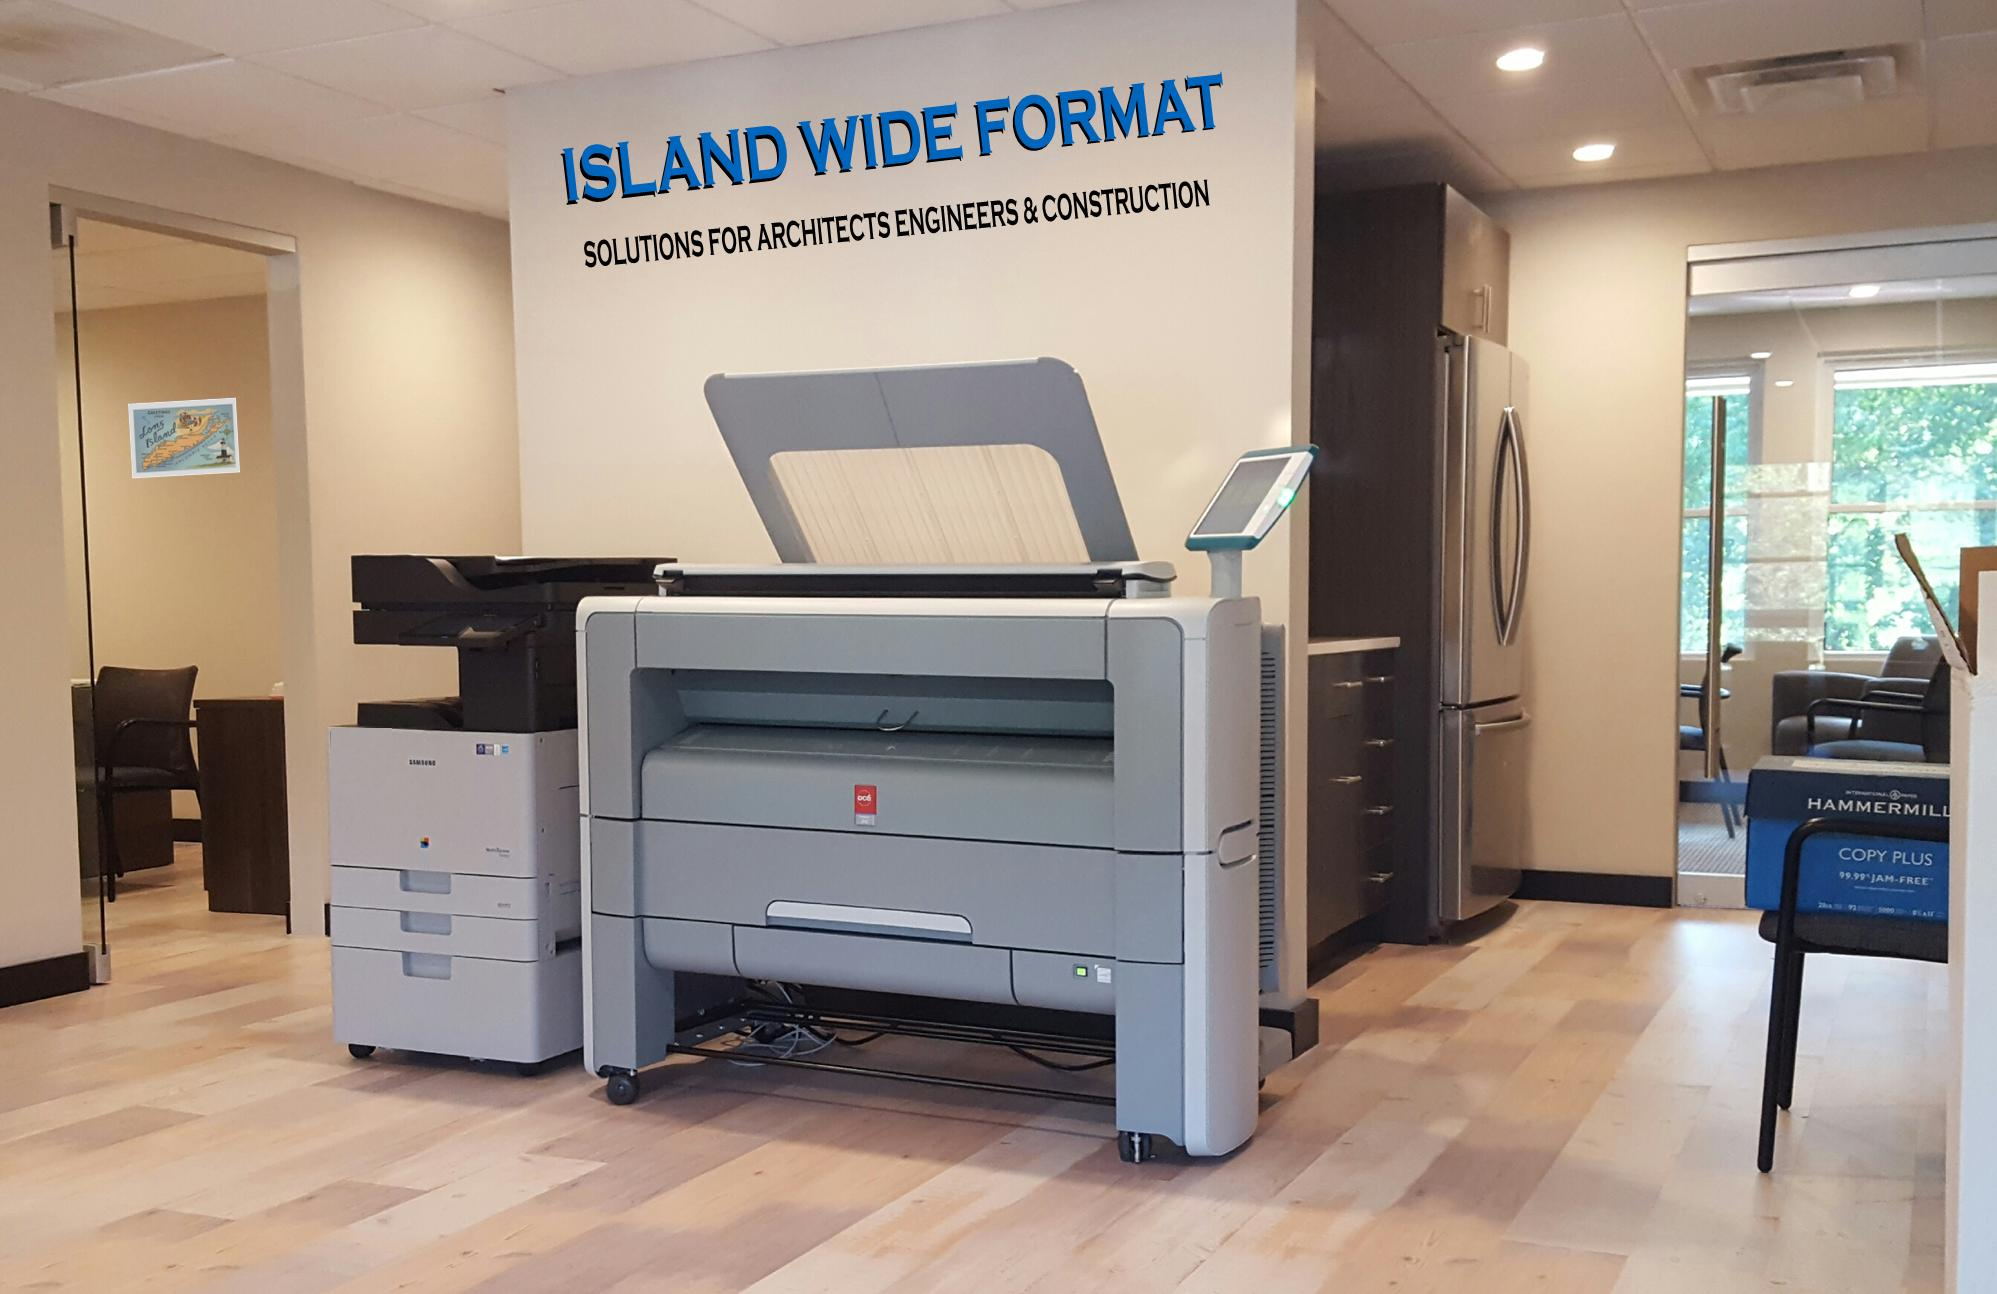 hp plotter queens – Looking For A Wide Format Printer?